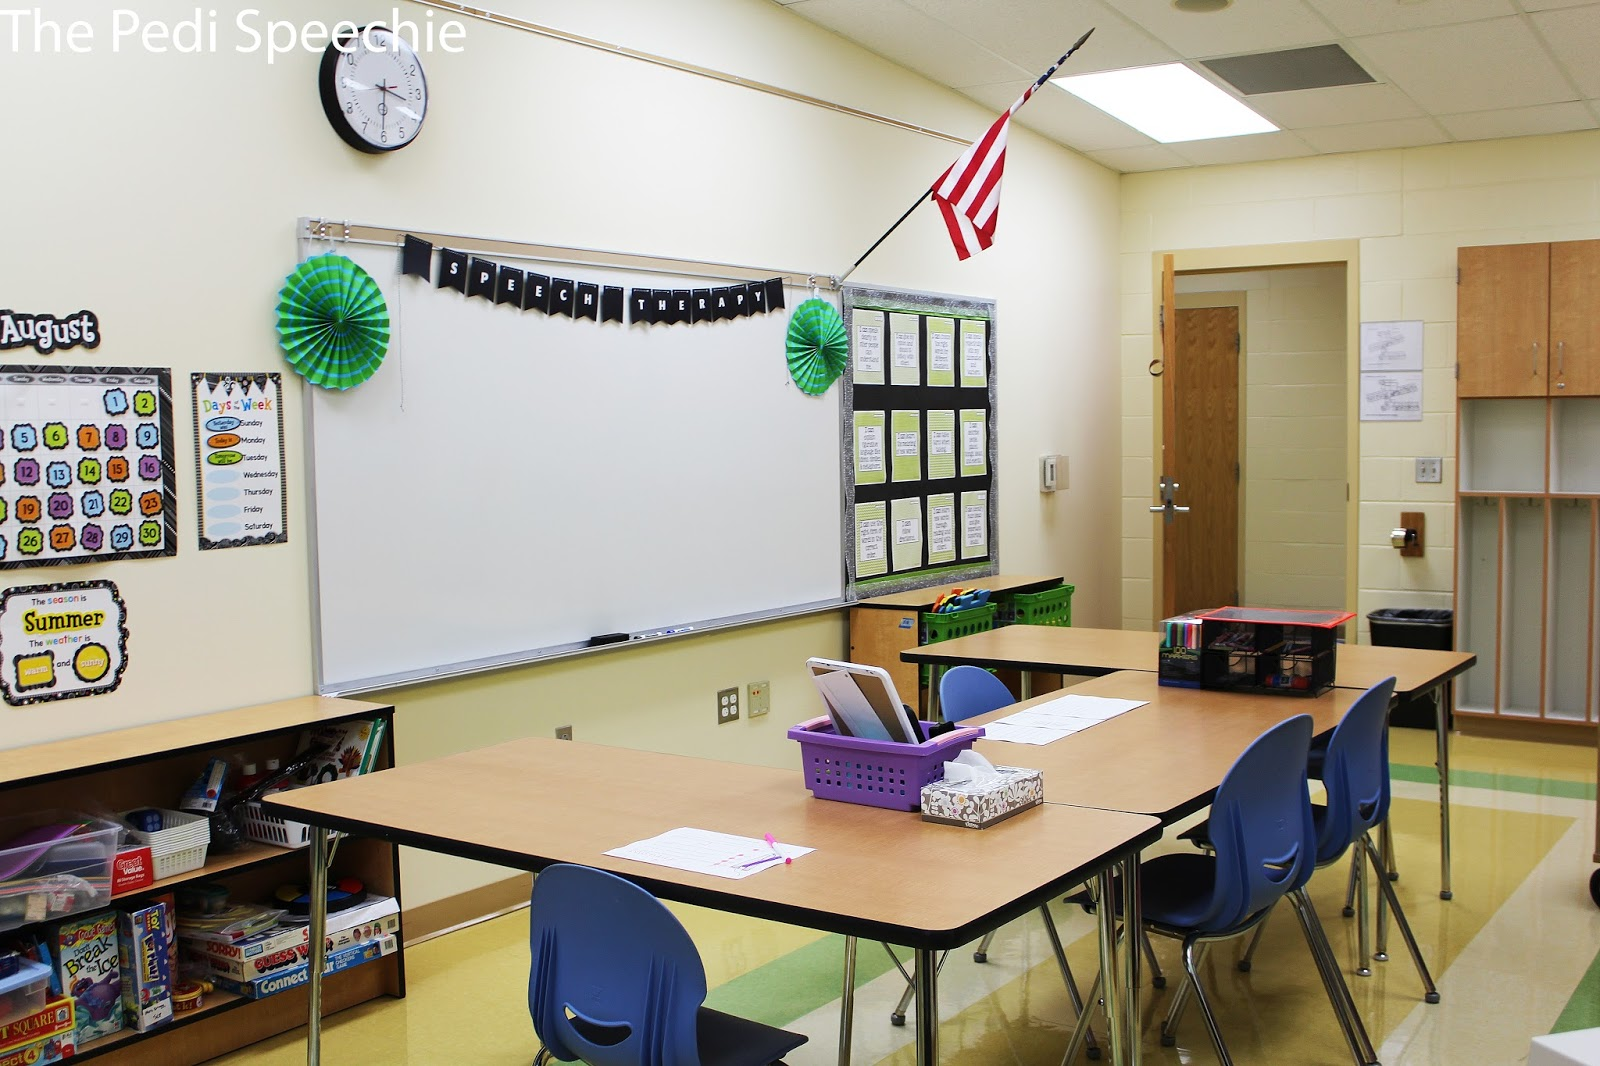 Alright I Am Finally Ready To Show You All What My Sch Room Looks Like Step Right On In For The Grand Tour Of